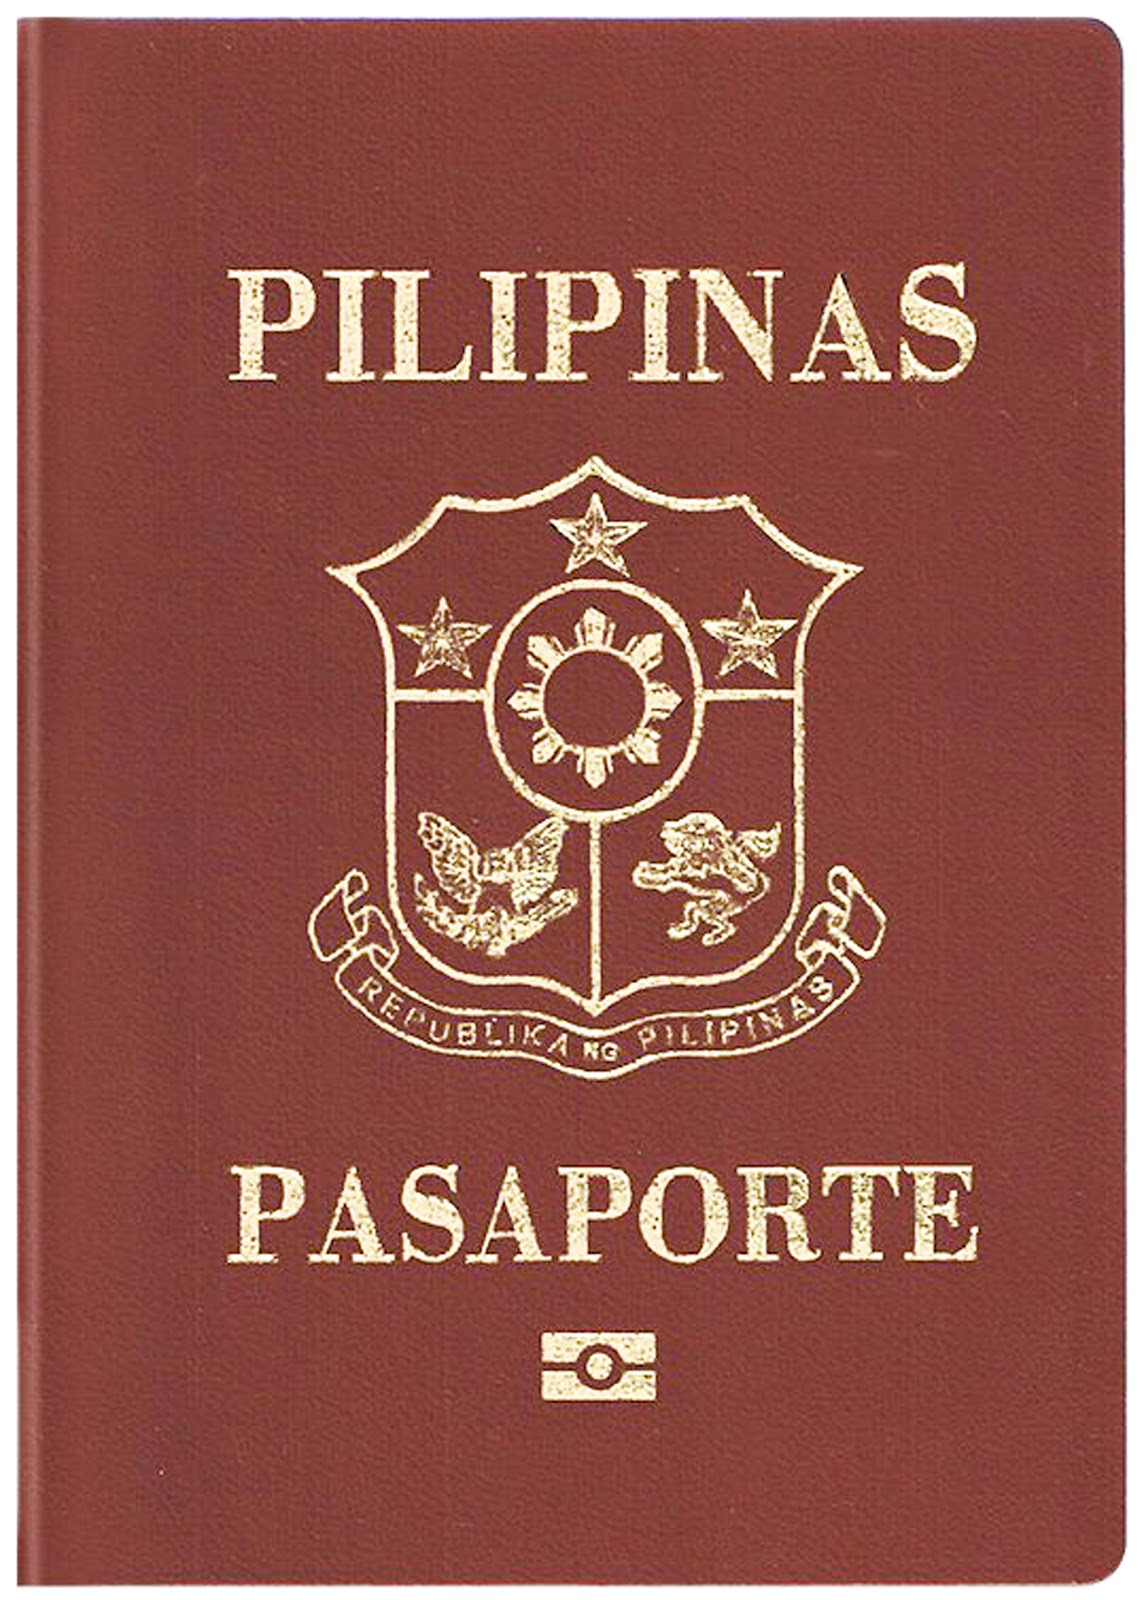 philippine passport renewal application form online